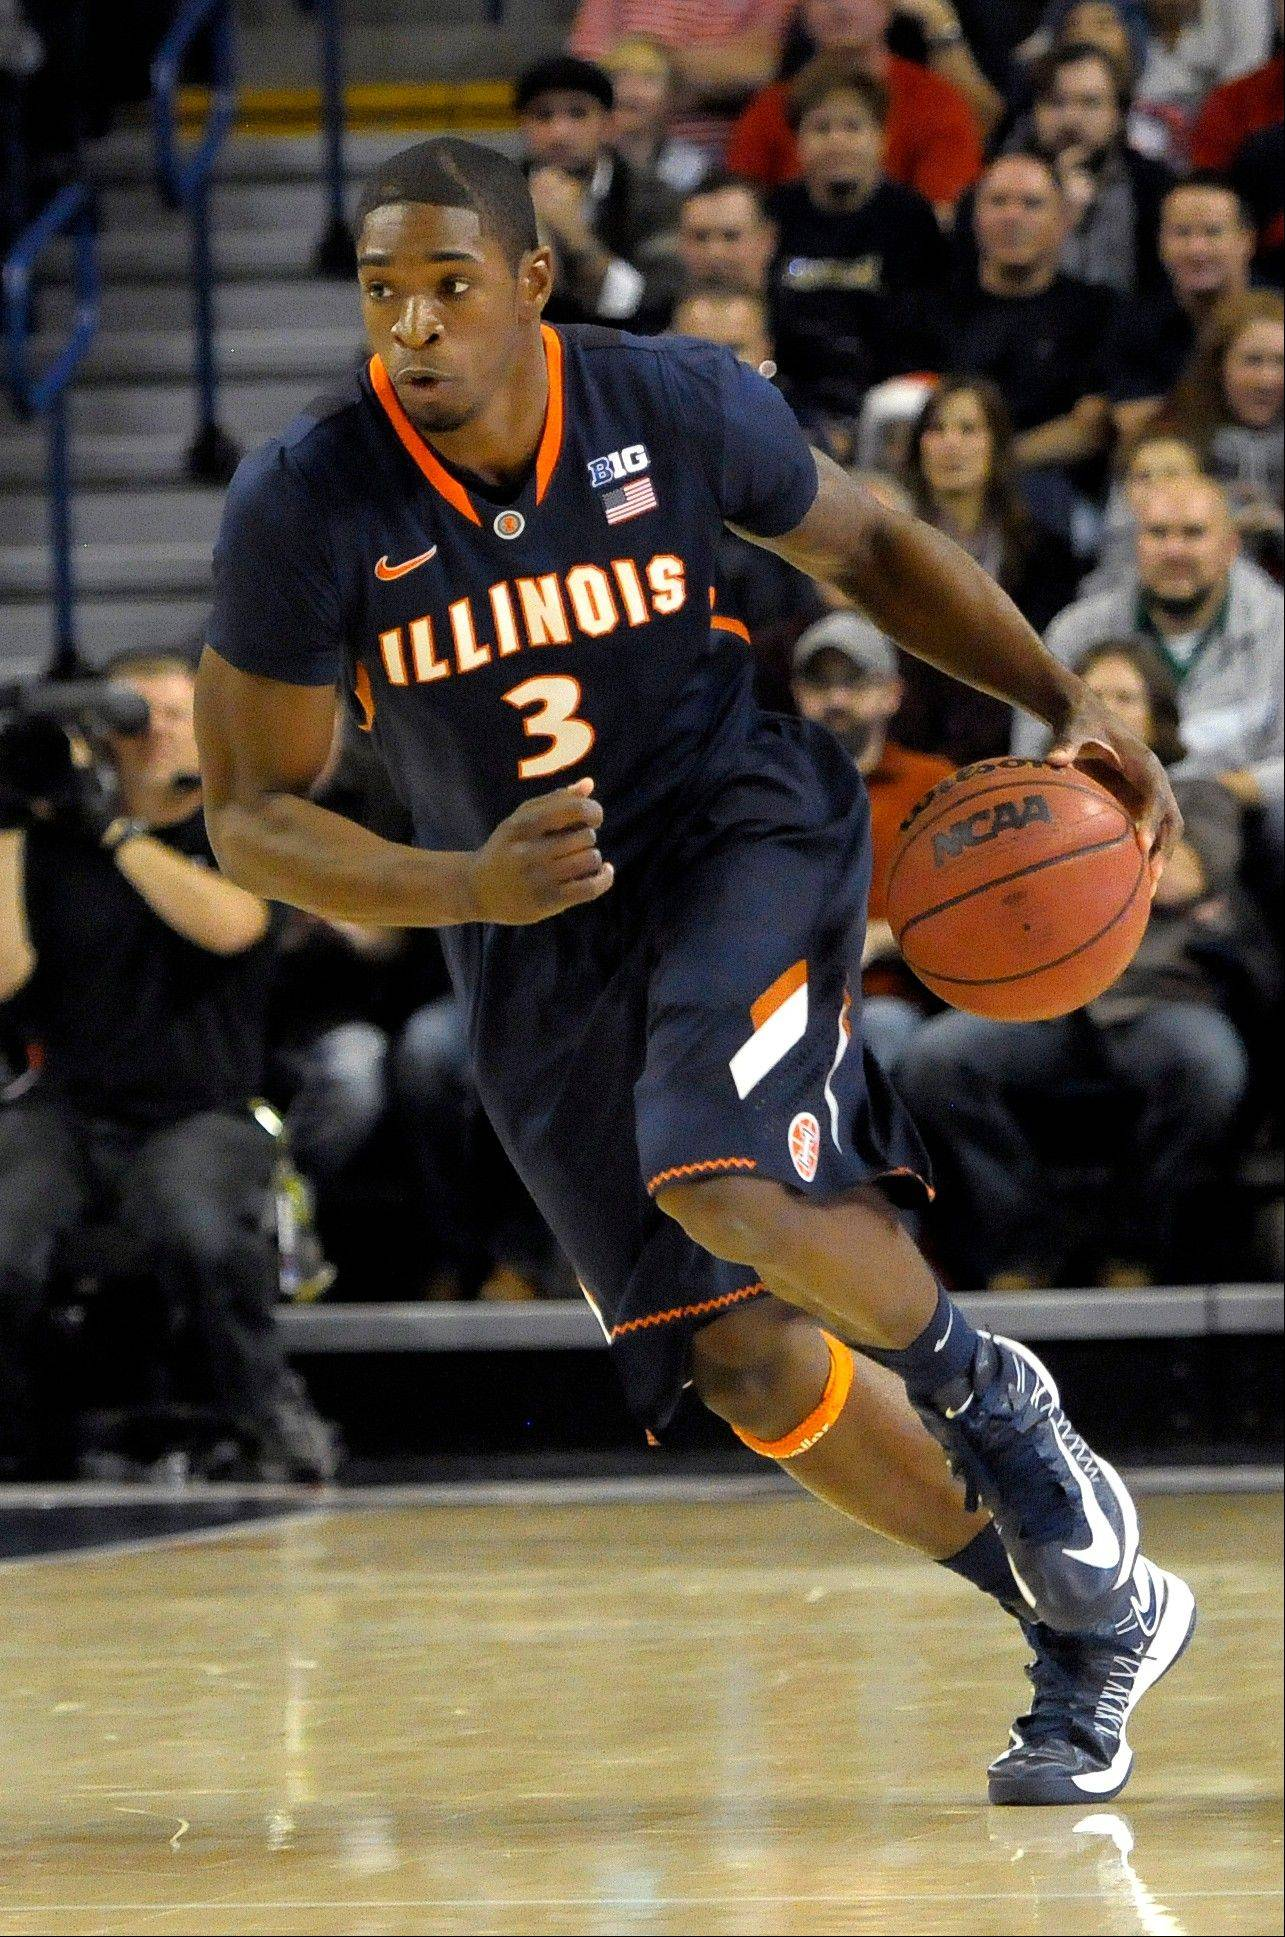 Illinois� Brandon Paul (3) drives down court against Gonzaga in the first half.